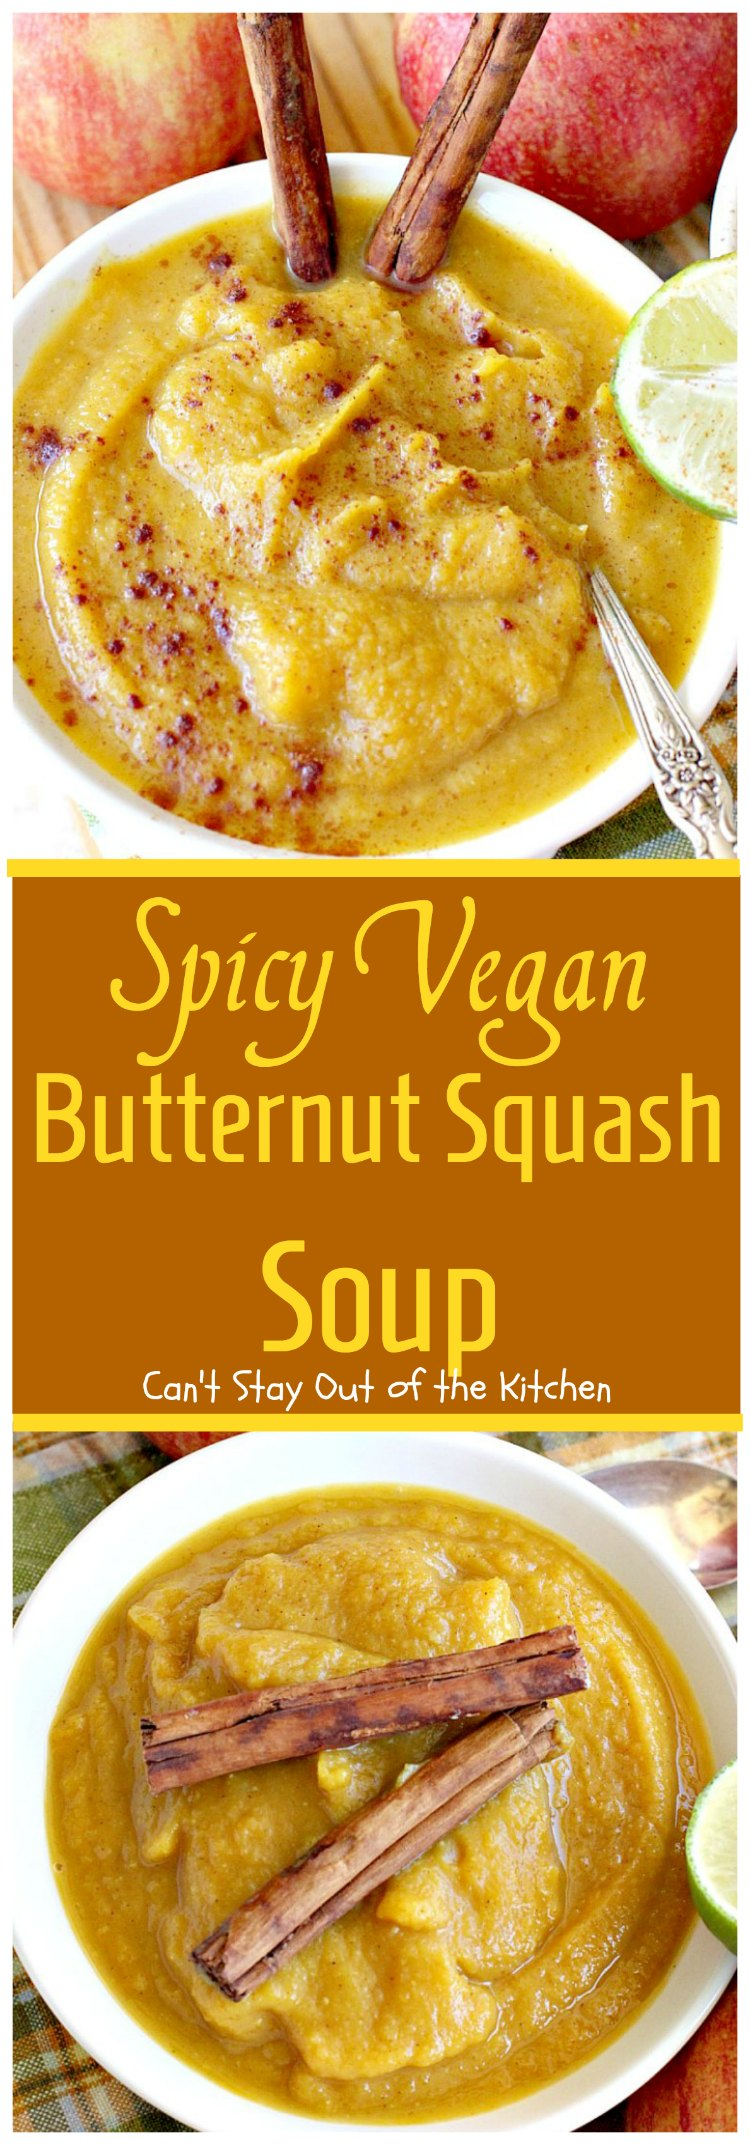 Spicy Vegan Butternut Squash Soup is one delicious soup. I served mine ...